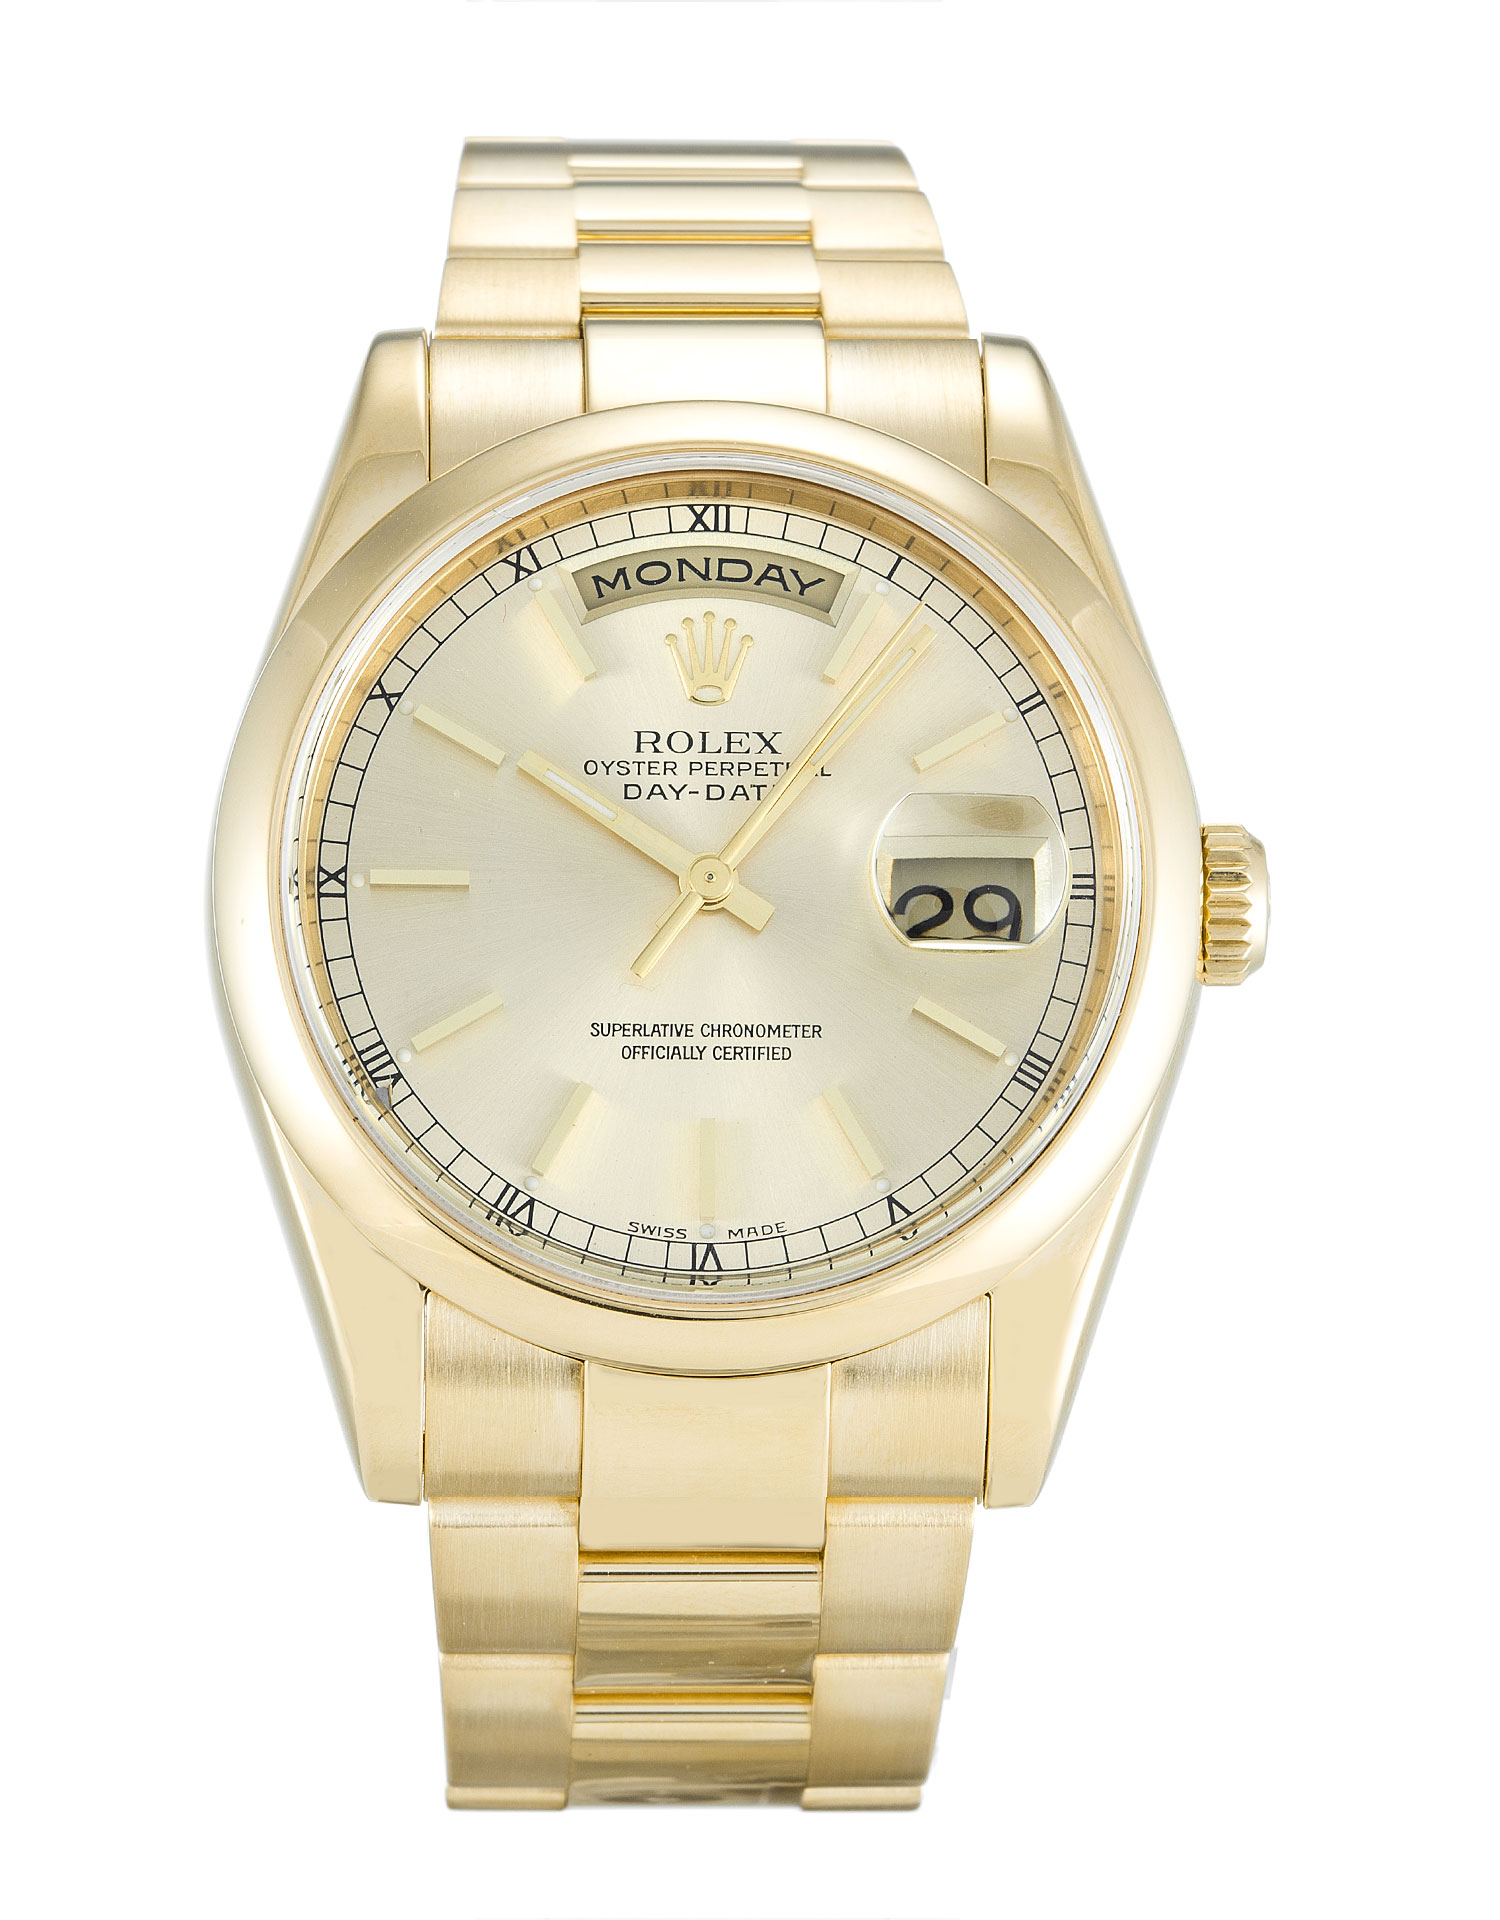 Rolex Day-date 118208 Mens 36 Mm Yellow Gold Case Automatic Movement – iapac.to